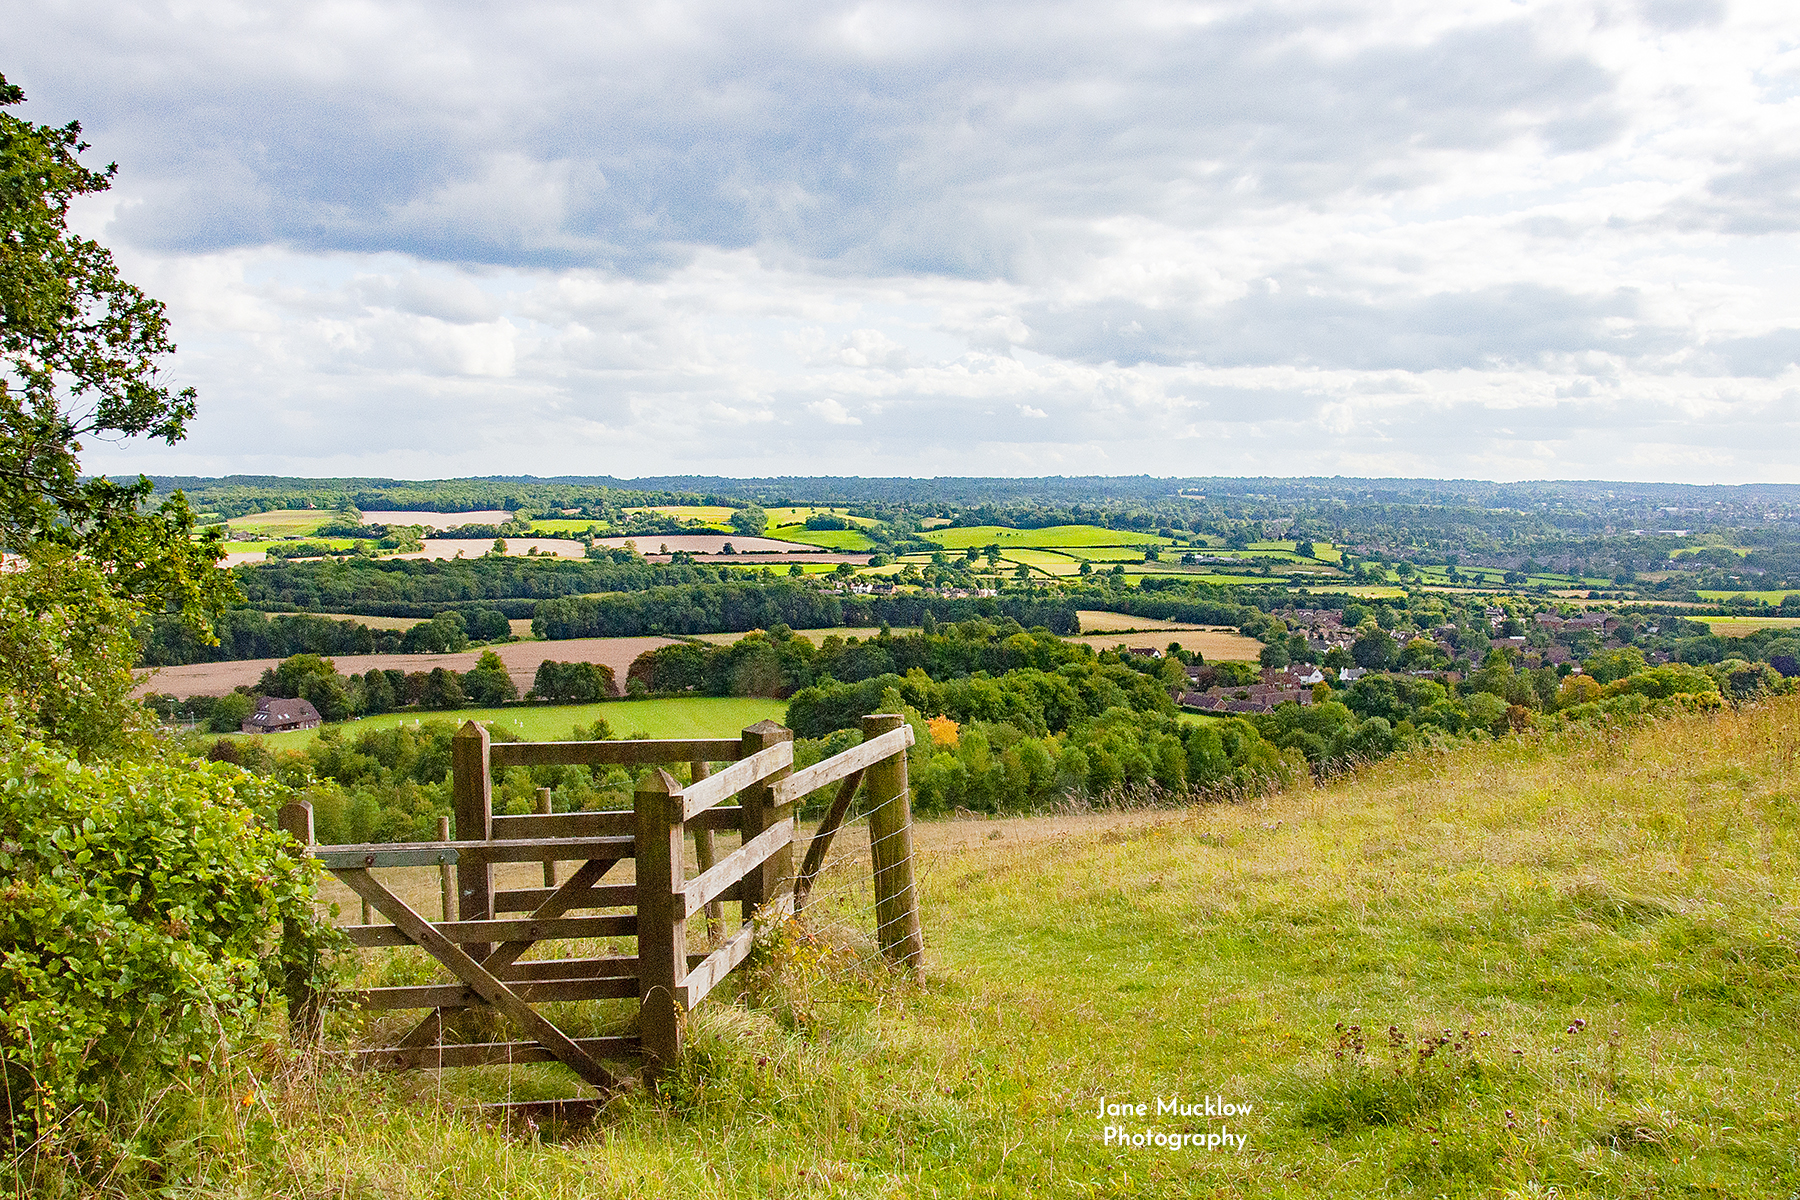 Photo of the view to Sevenoaks from Kemsing Downs, by Jane Mucklow